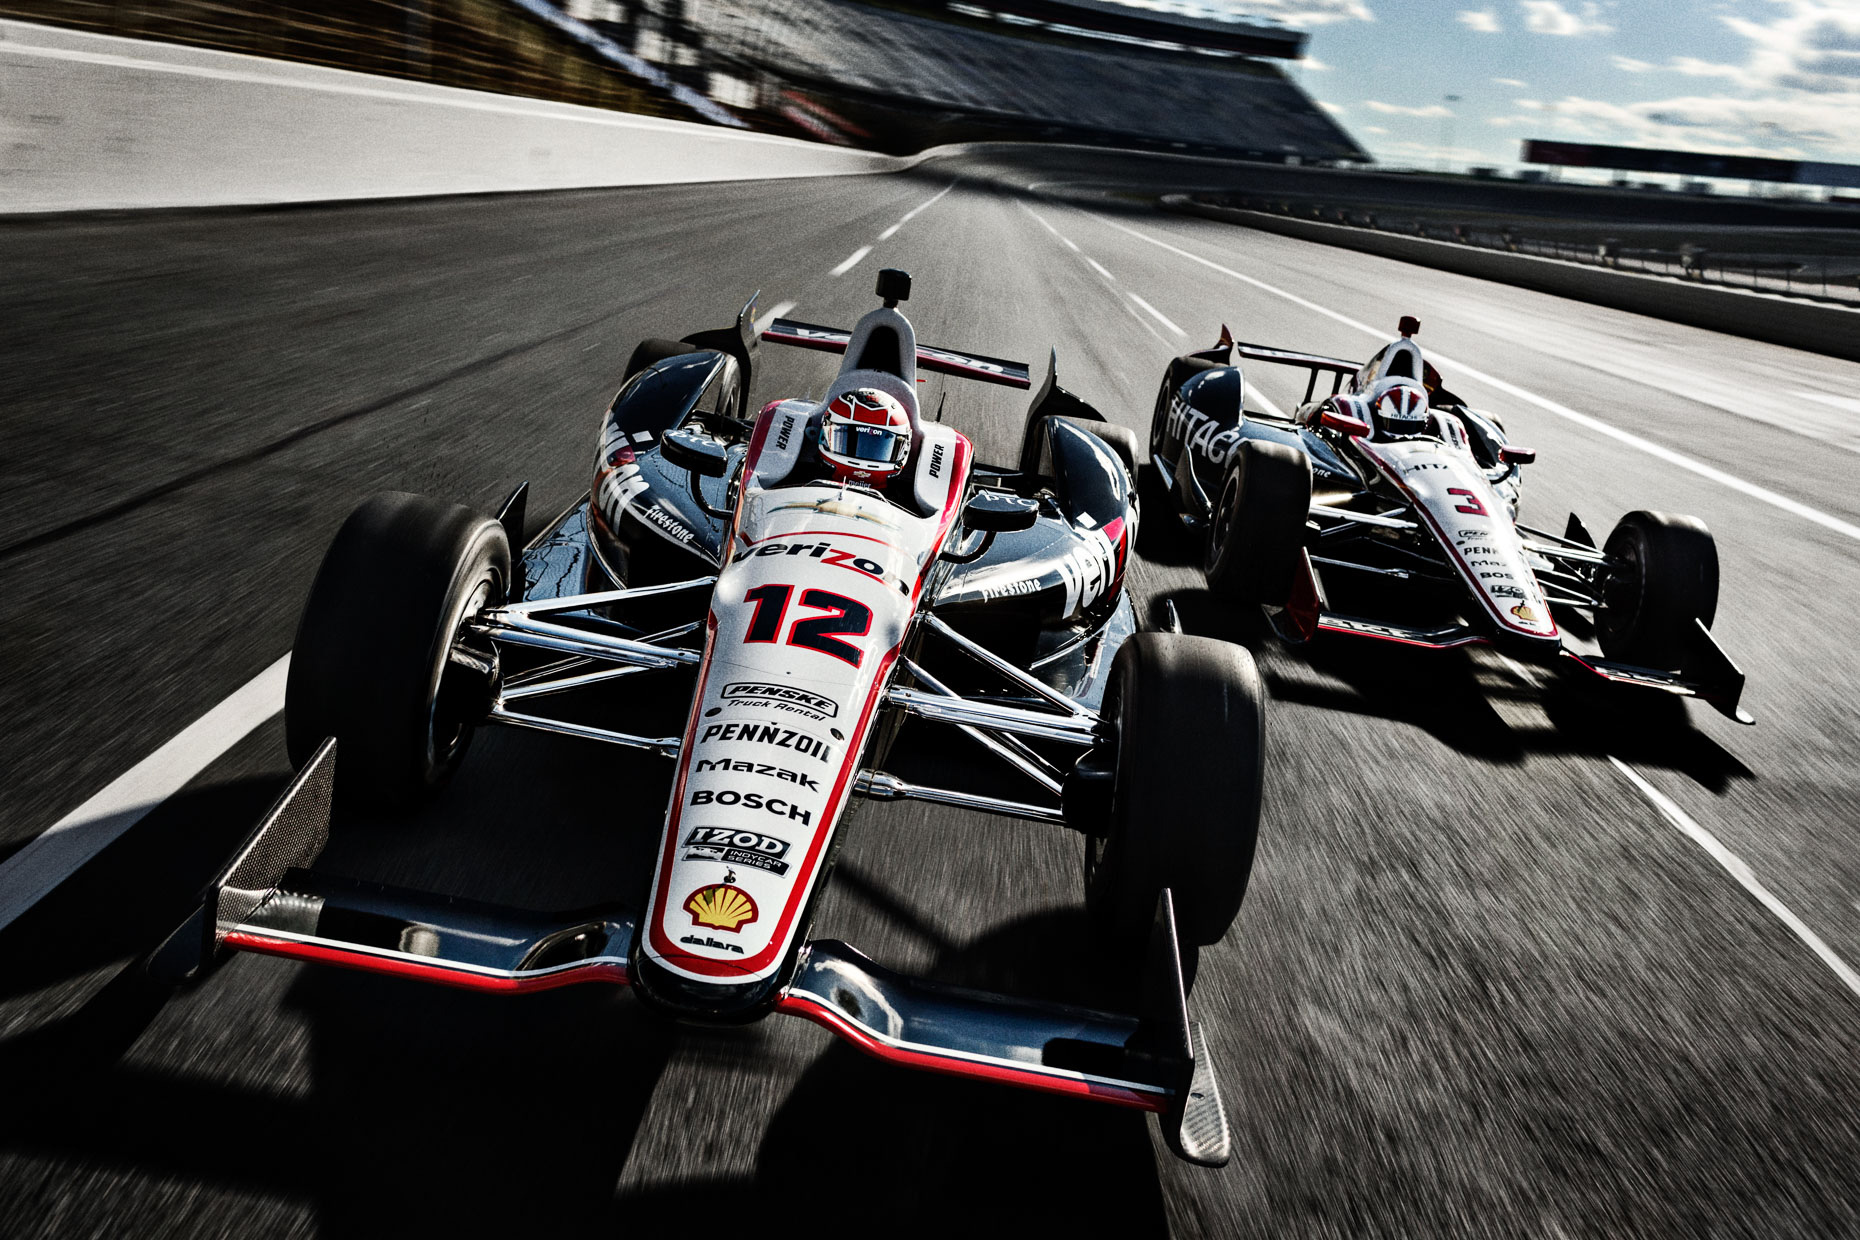 Tight shot of Indycar #12, shot from a camera chase car. Racecar drivers Will Power Helio Castroneves IndyCar Team Penske Charlotte Motor Speedway for Verizon by Andy Batt